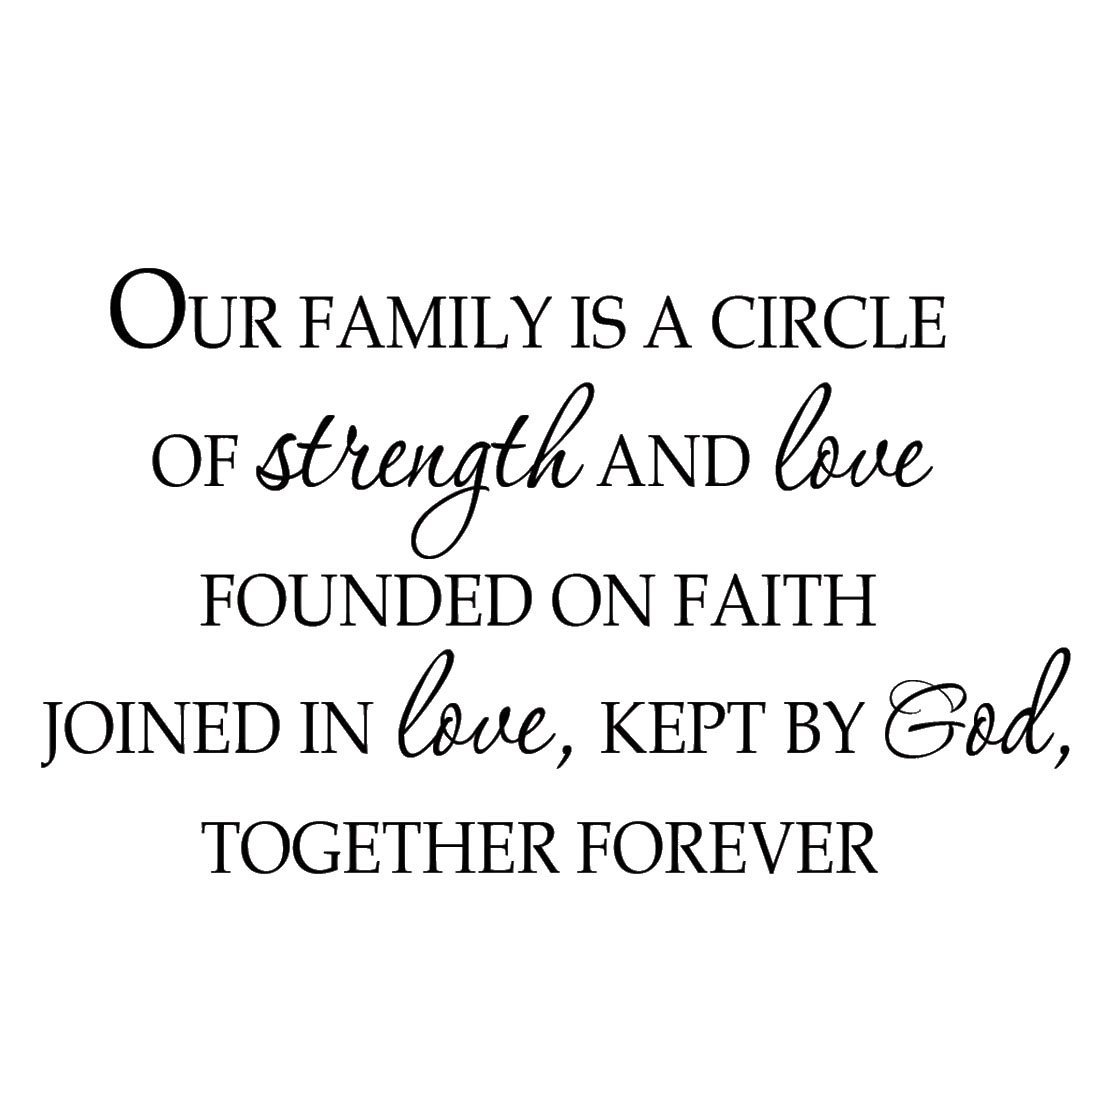 Vwaq Our Family Is A Circle Of Strength And Love Founded On Faith